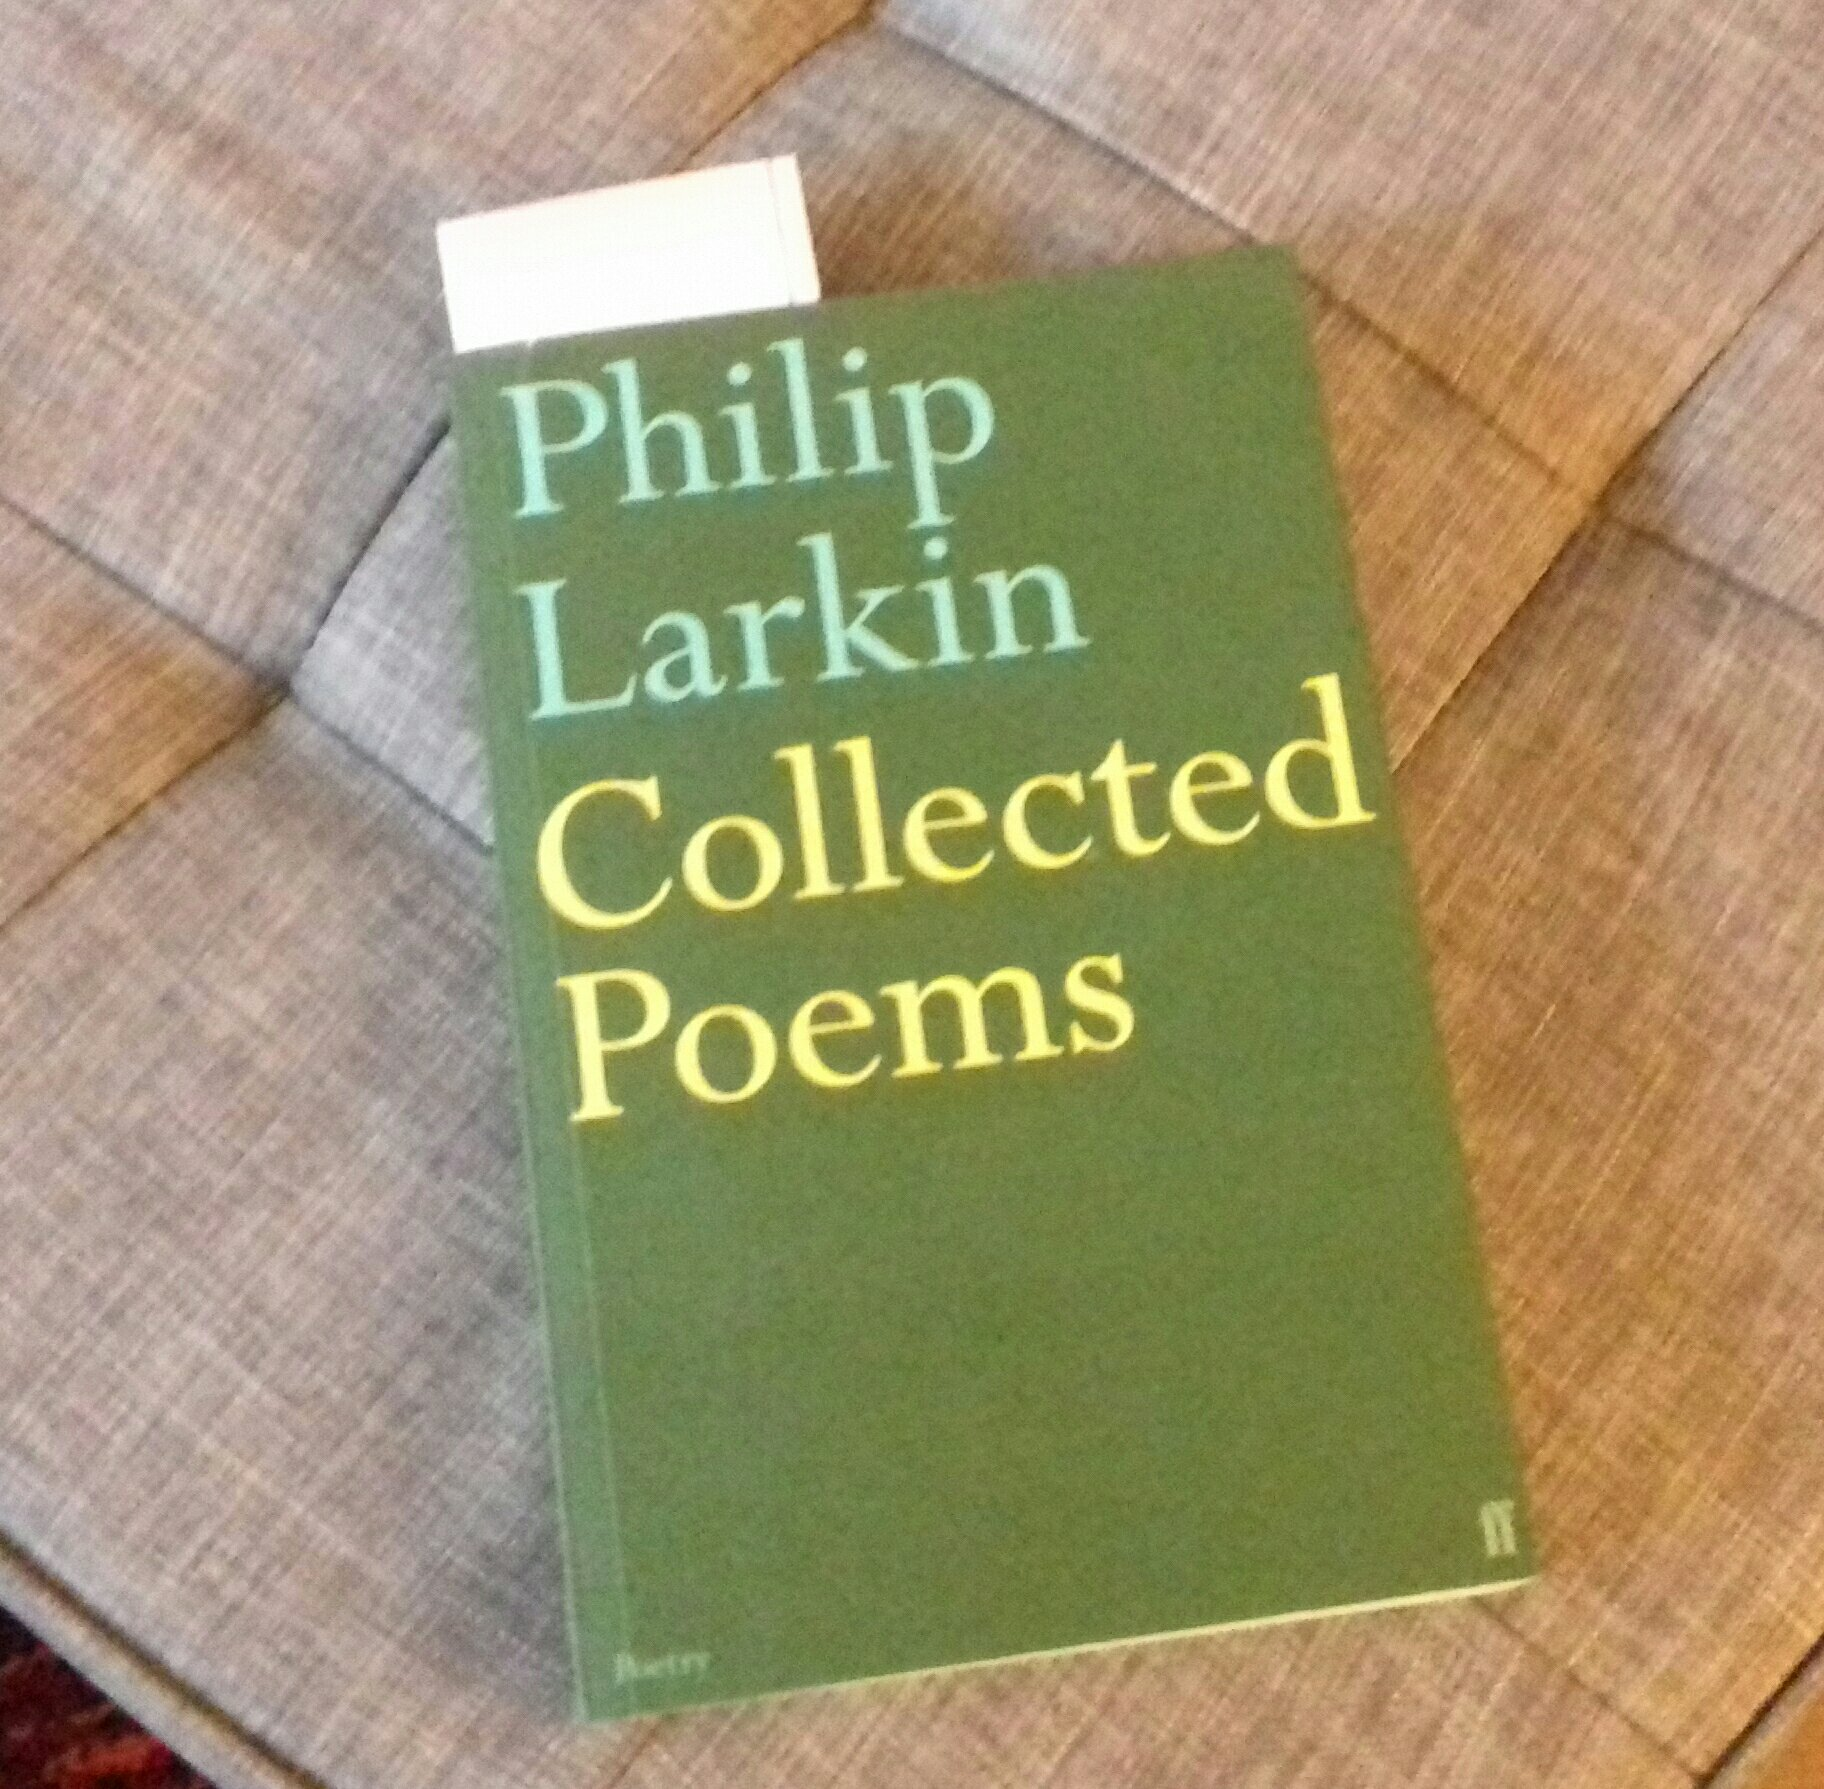 Photograph of the Faber edition of Philip Larkin's Collected Poems. The book has a plain sage green cover with the poet's name and the title.